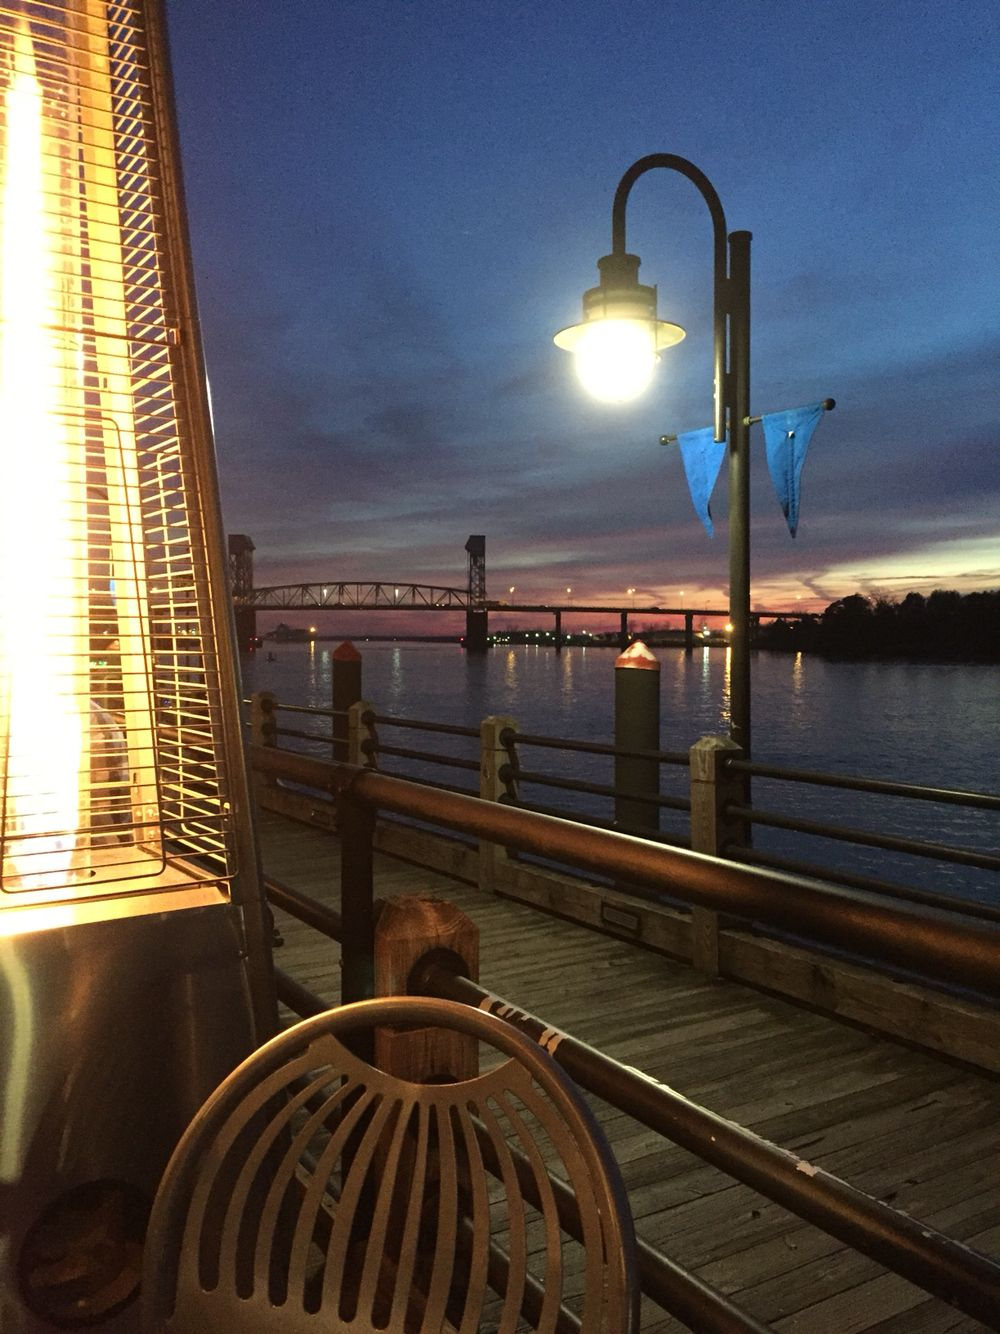 The George Restaurant On Riverwalk Dock Dine In Historic Downtown Wilmington Nc Great Dinner River